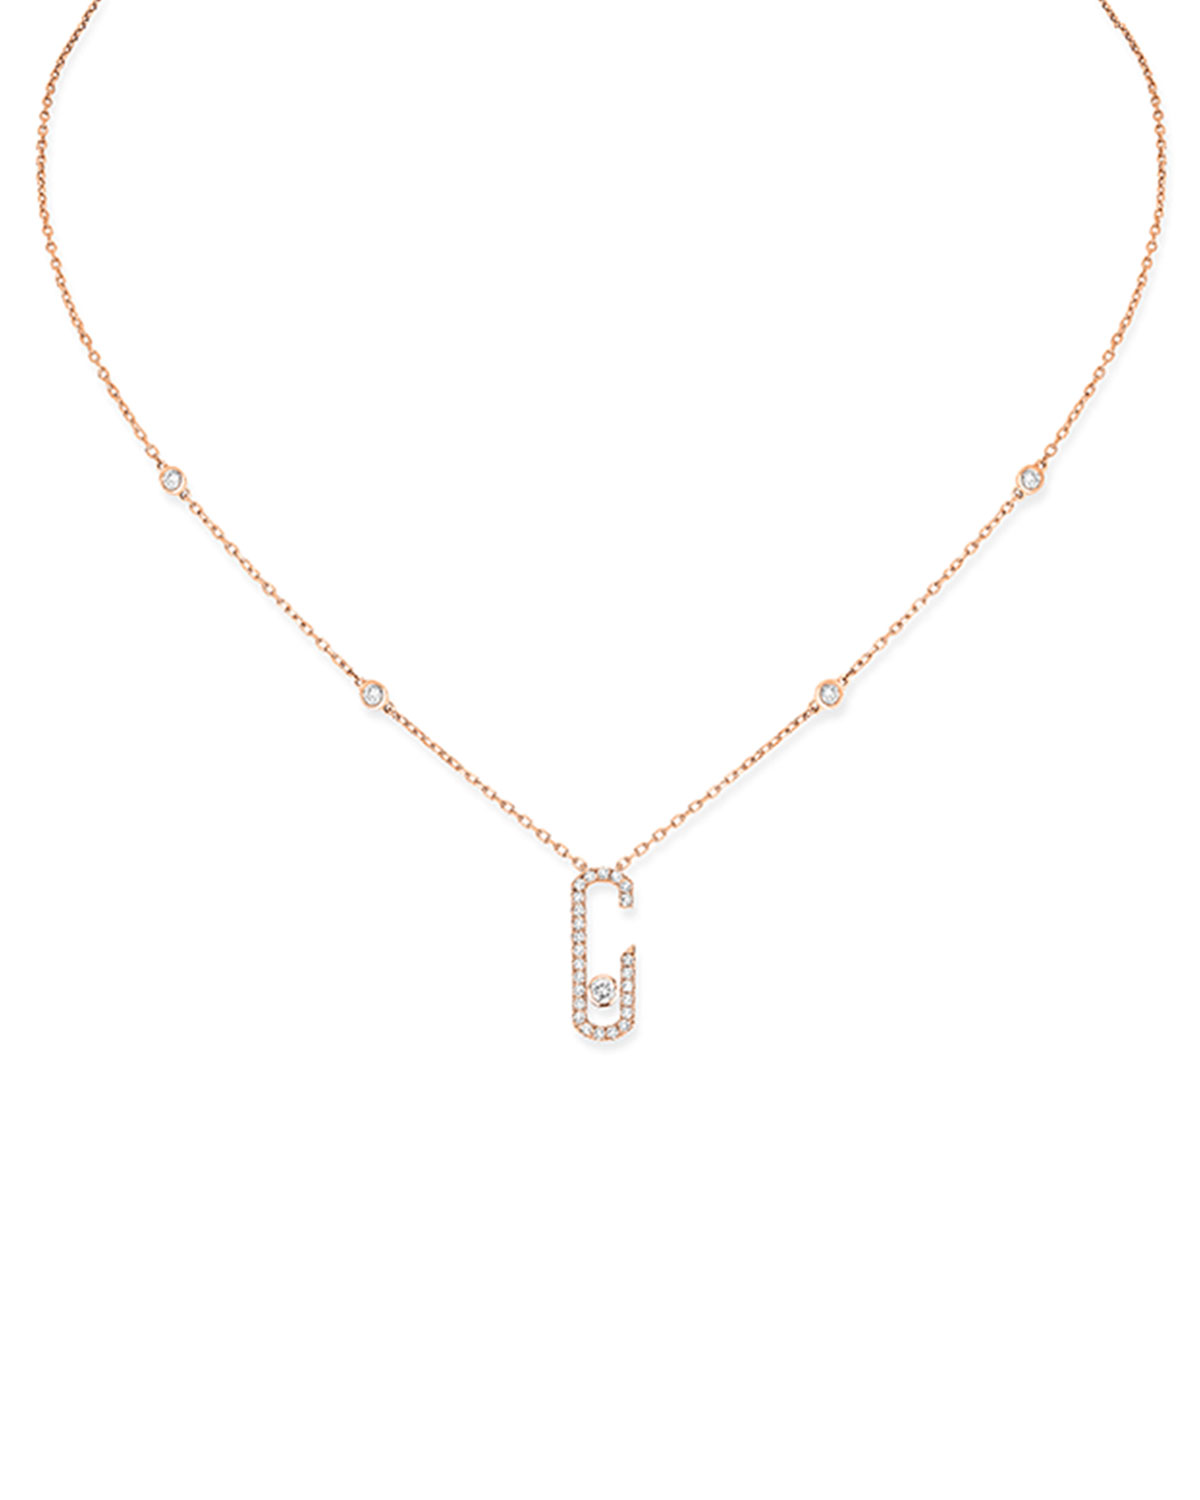 Messika Move Addiction Diamond Necklace in 18K Pink Gold RpAi1N7lp